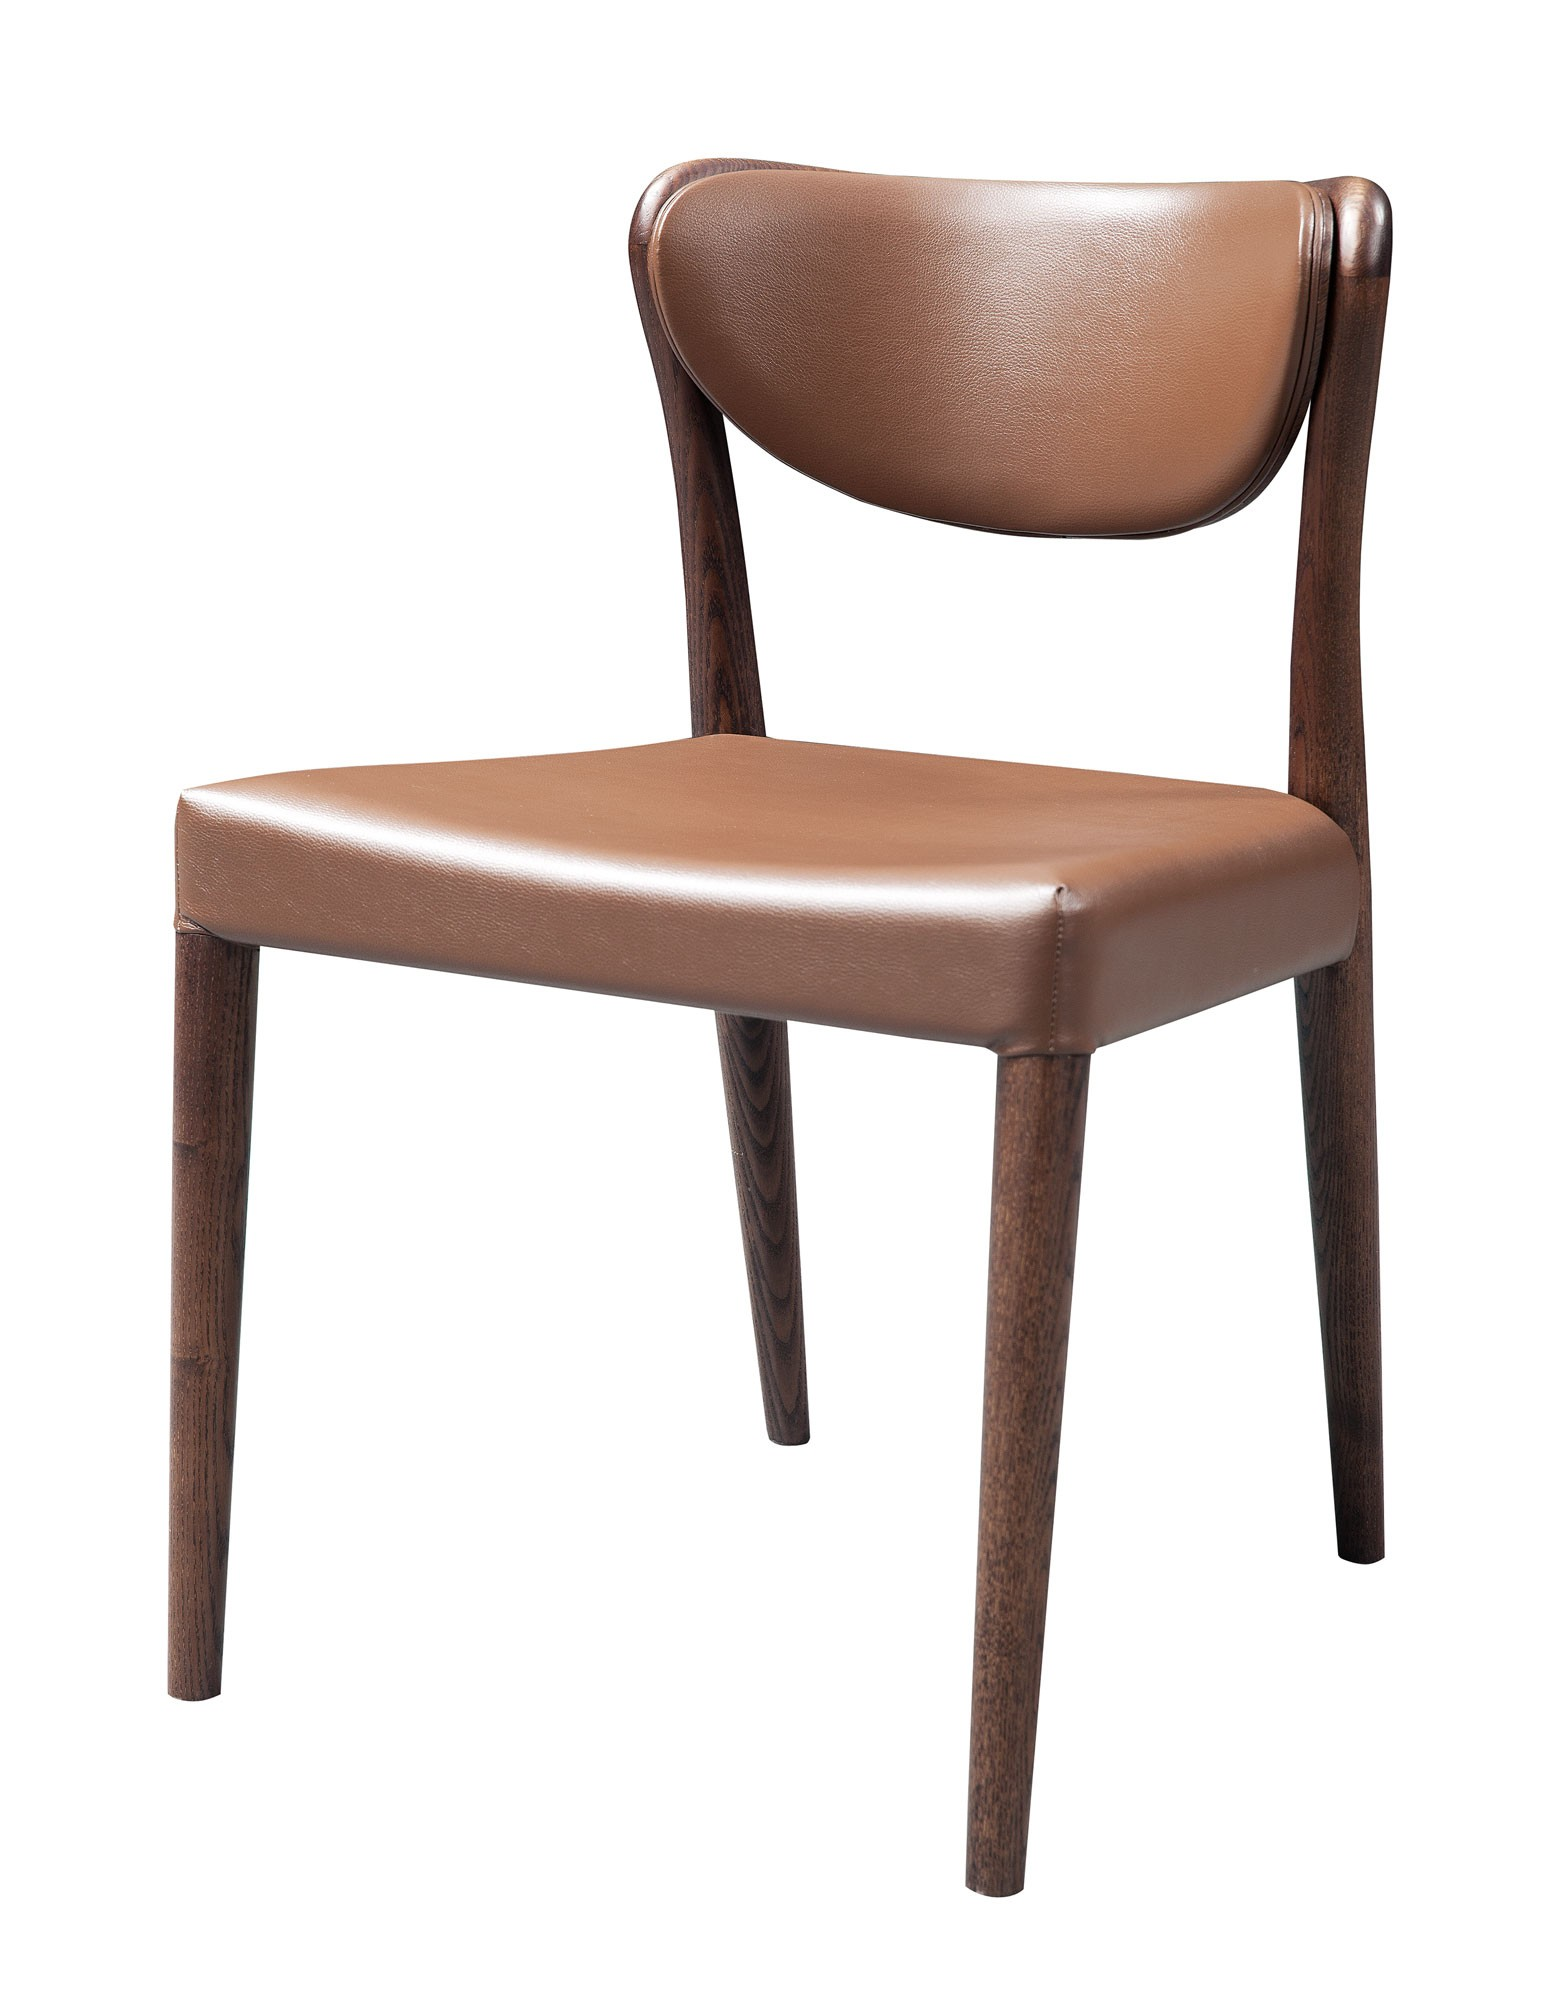 What makes a modern dining room chair comfortable la for Modern dining room chairs